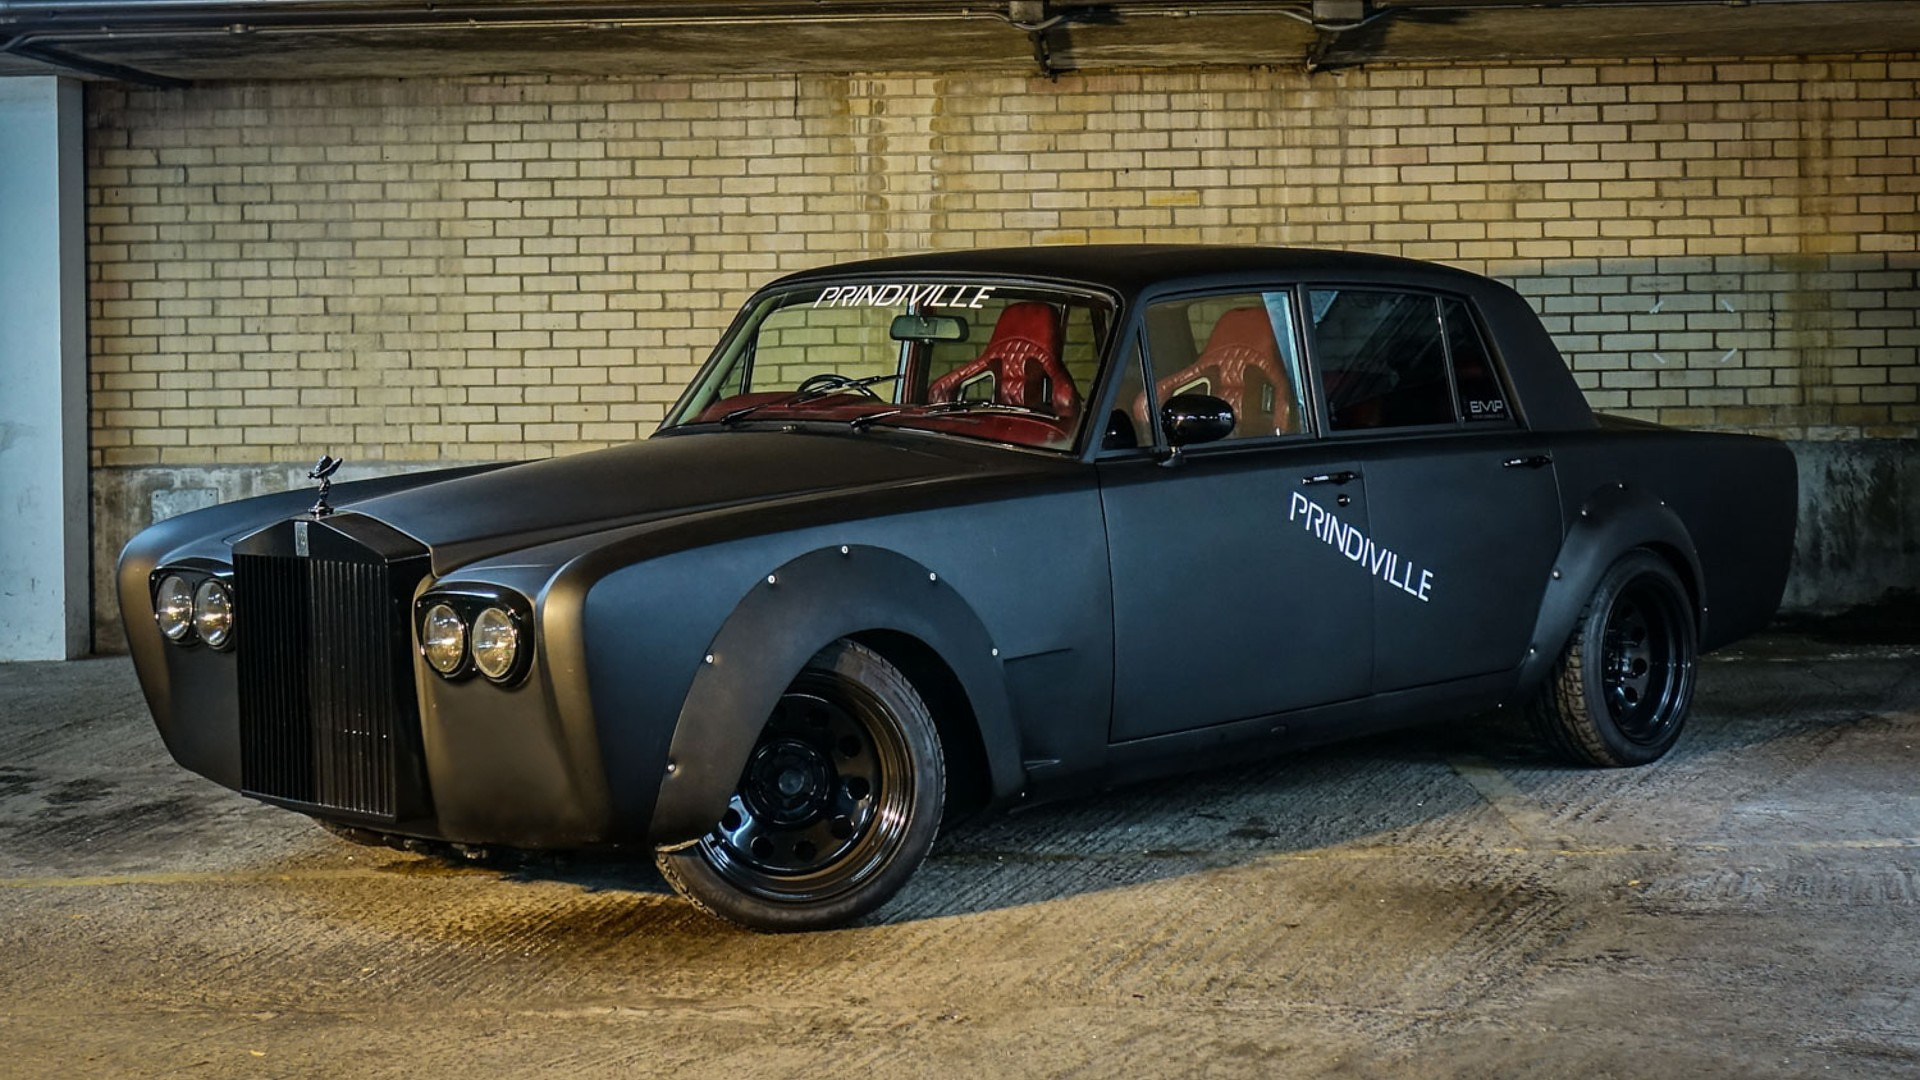 evil rolls royce silver shadow drift car selling for 130k. Black Bedroom Furniture Sets. Home Design Ideas